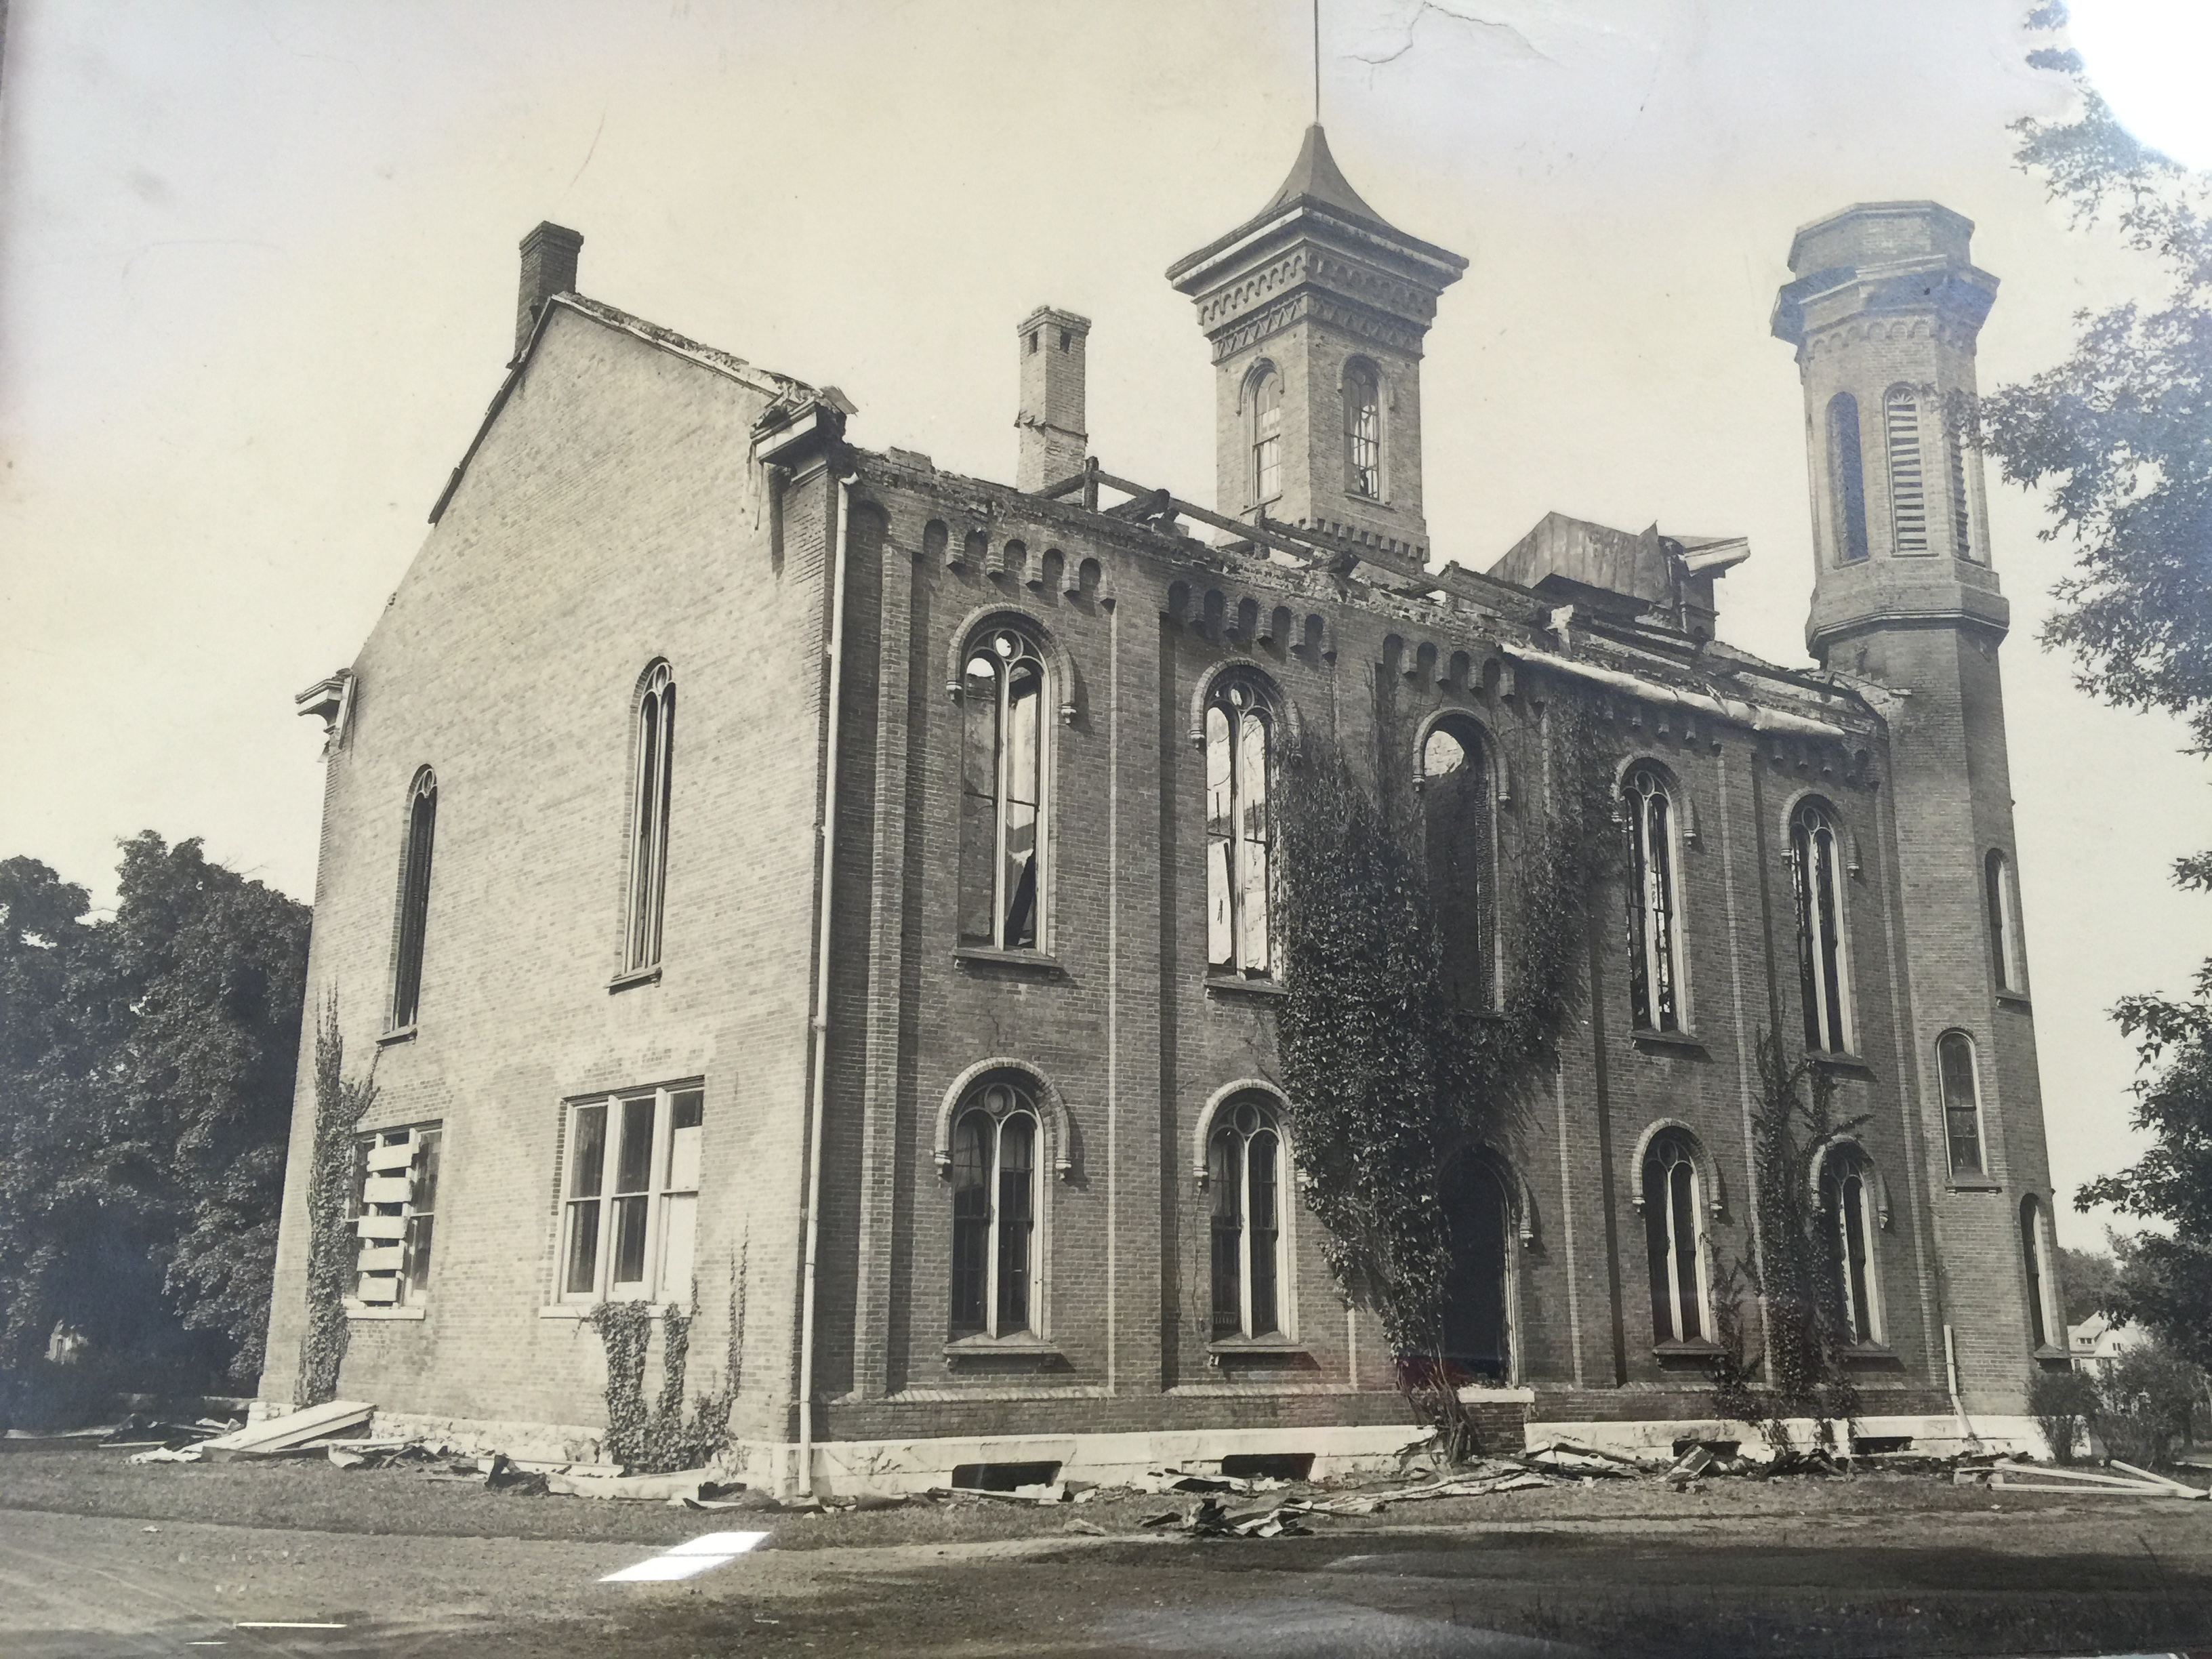 Sturtevant Hall after the fire